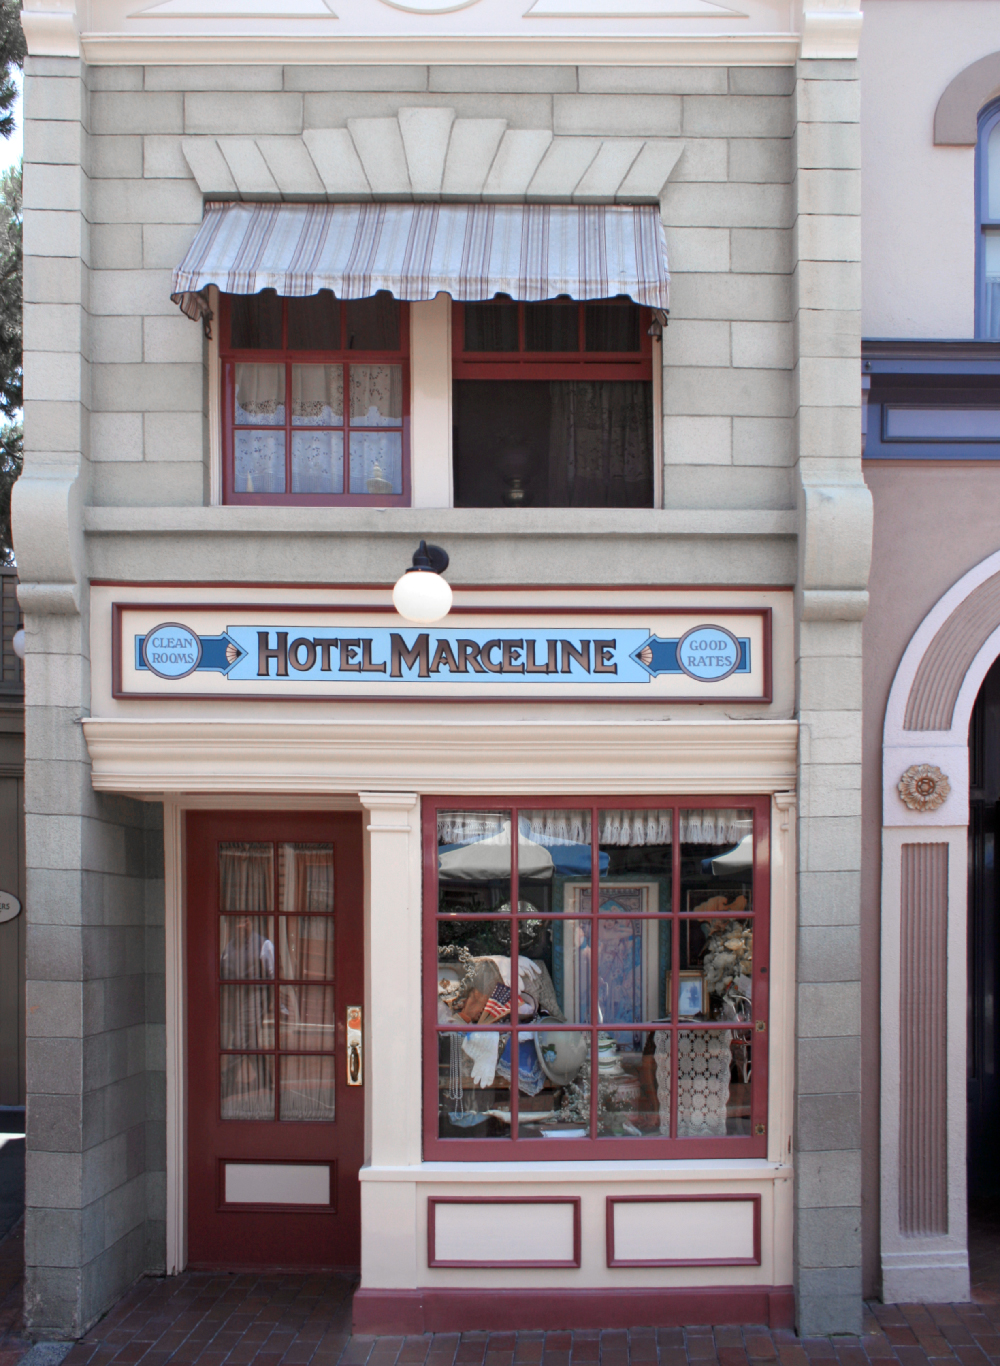 Hotel Marceline storefront at Disneyland, 2007.